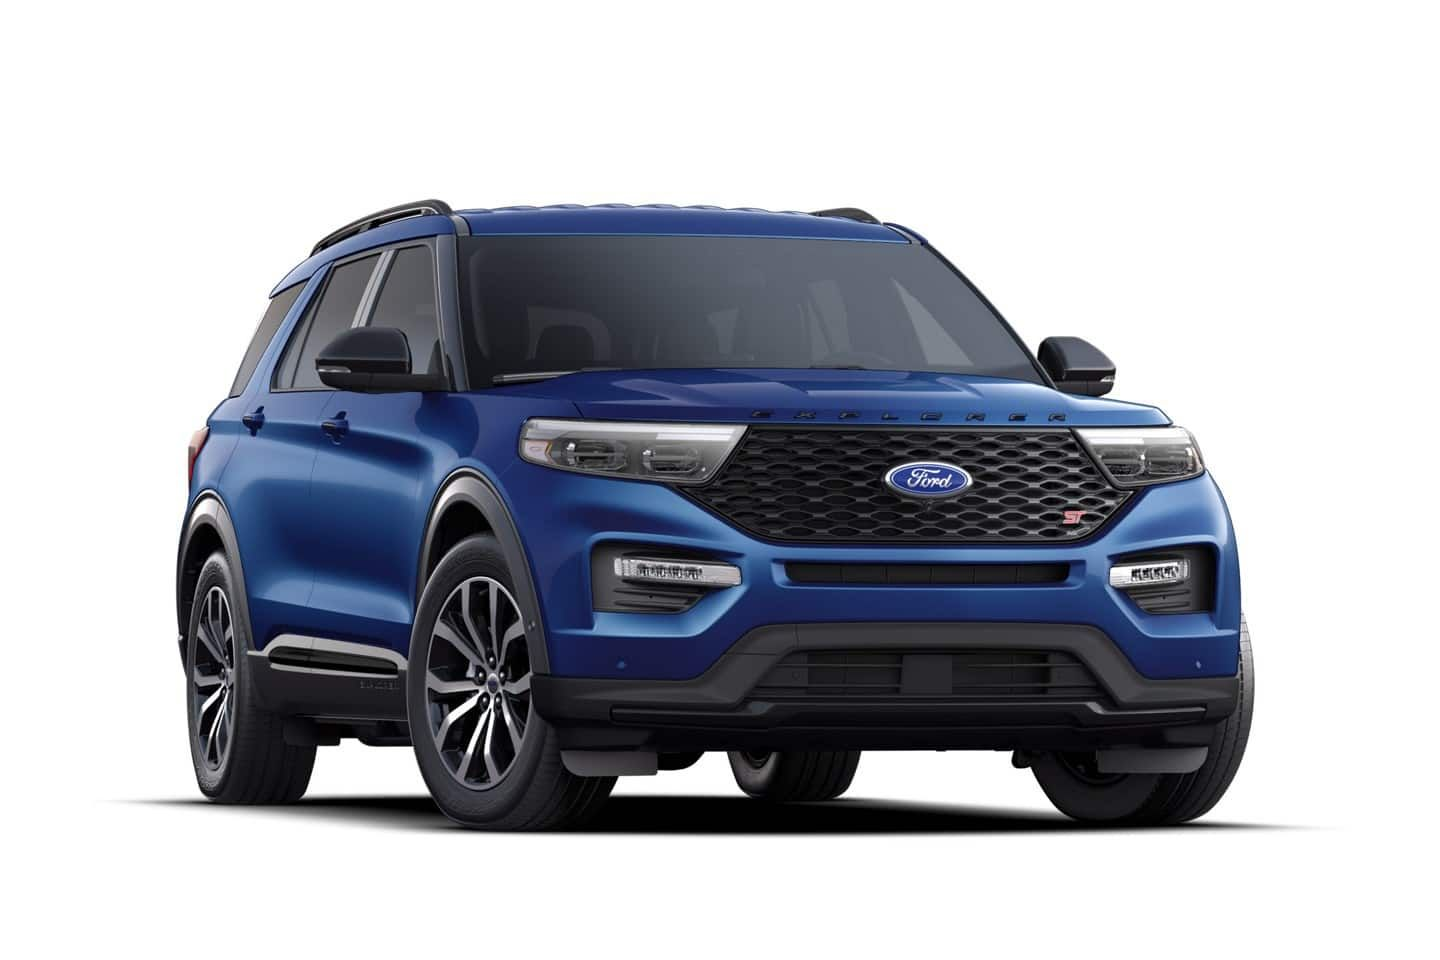 2020 Ford Explorer S T in Atlas Blue Ford explorer, 2020